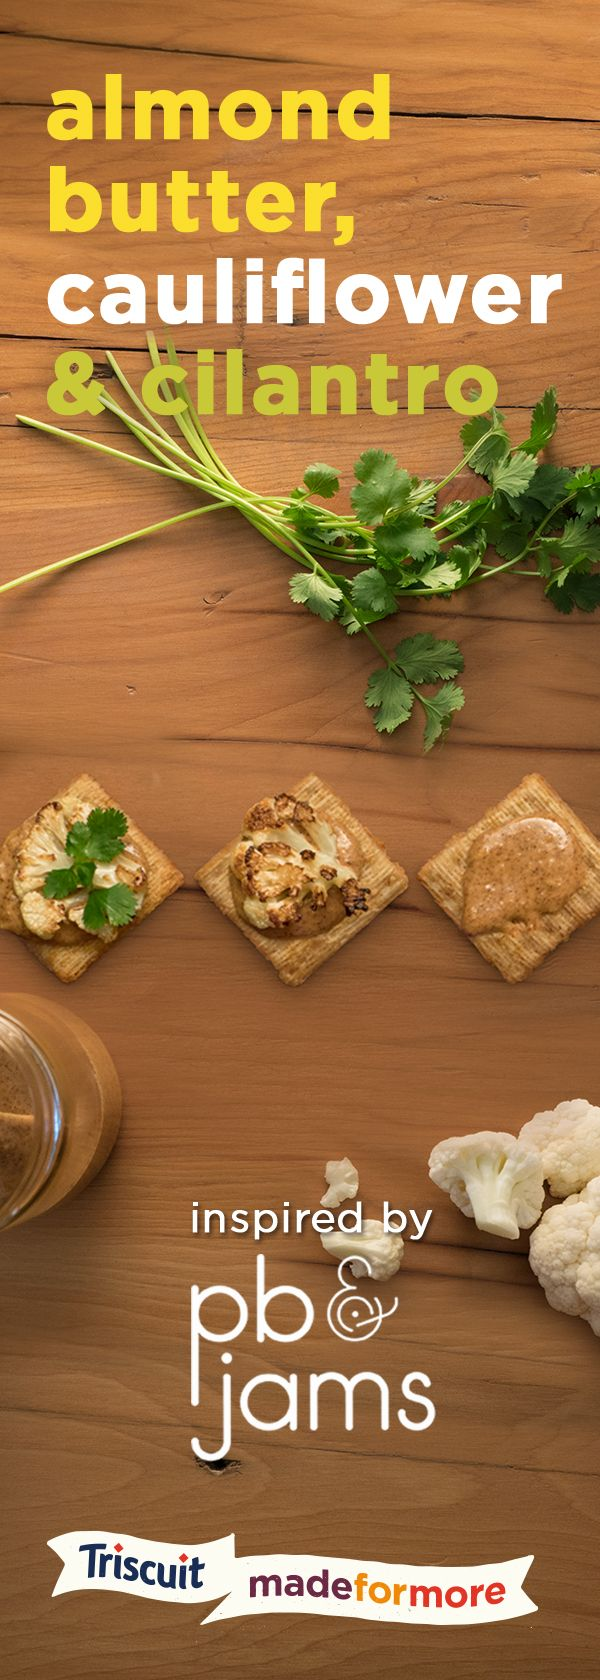 PB&Jams has once again inspired another delicious snack for us, and this unexpected combination is sure to surprise & delight! Spread almond butter on top of a TRISCUIT cracker, then top with roasted cauliflower & cilantro for a memorable fusion of flavors!